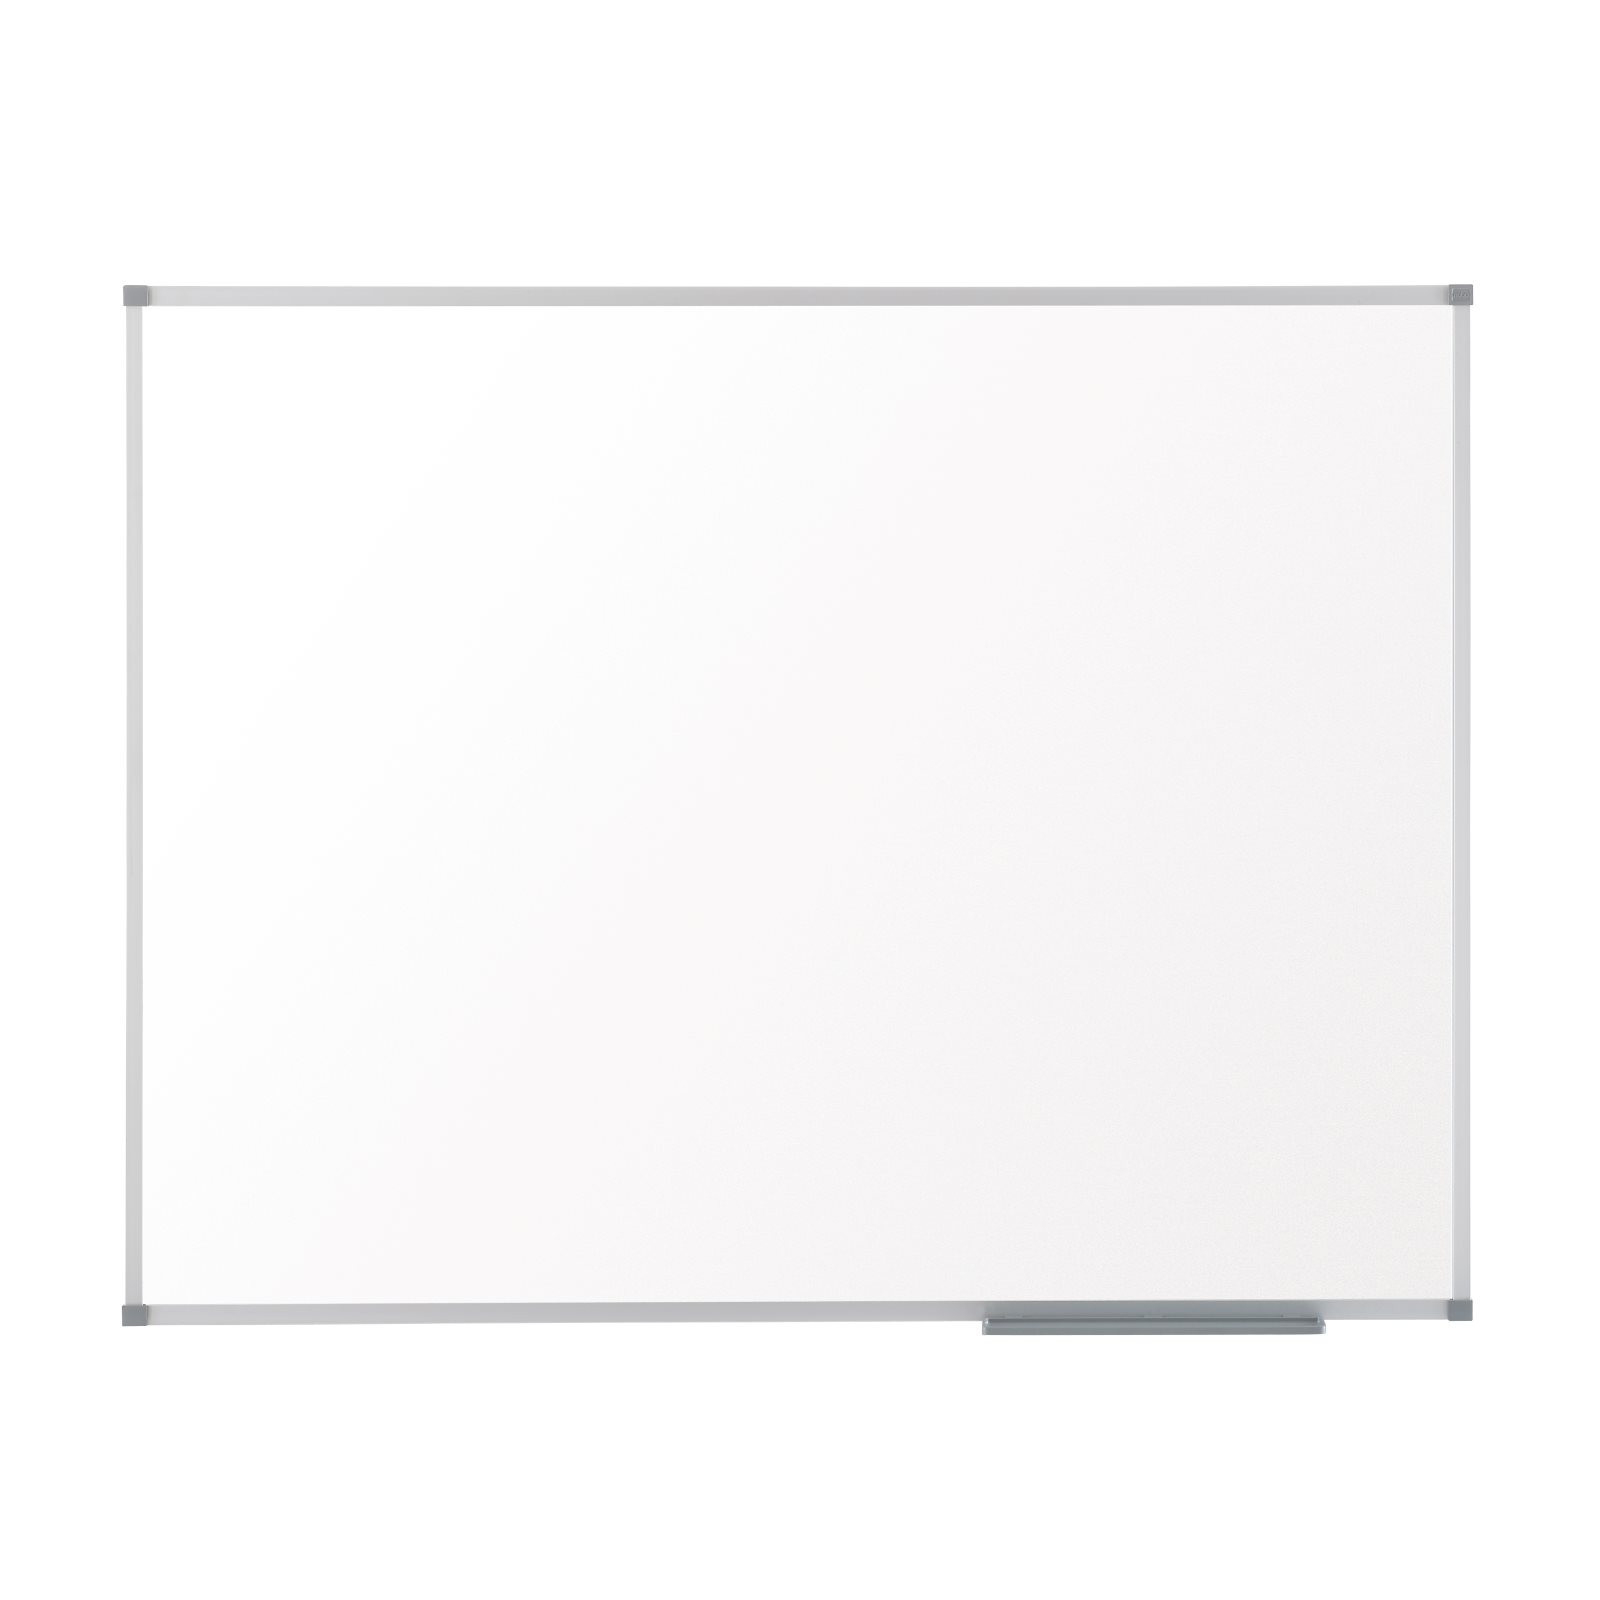 acco Nobo Basic Steel Whiteboard 1500x1000mm Dd 1905212 - AD01